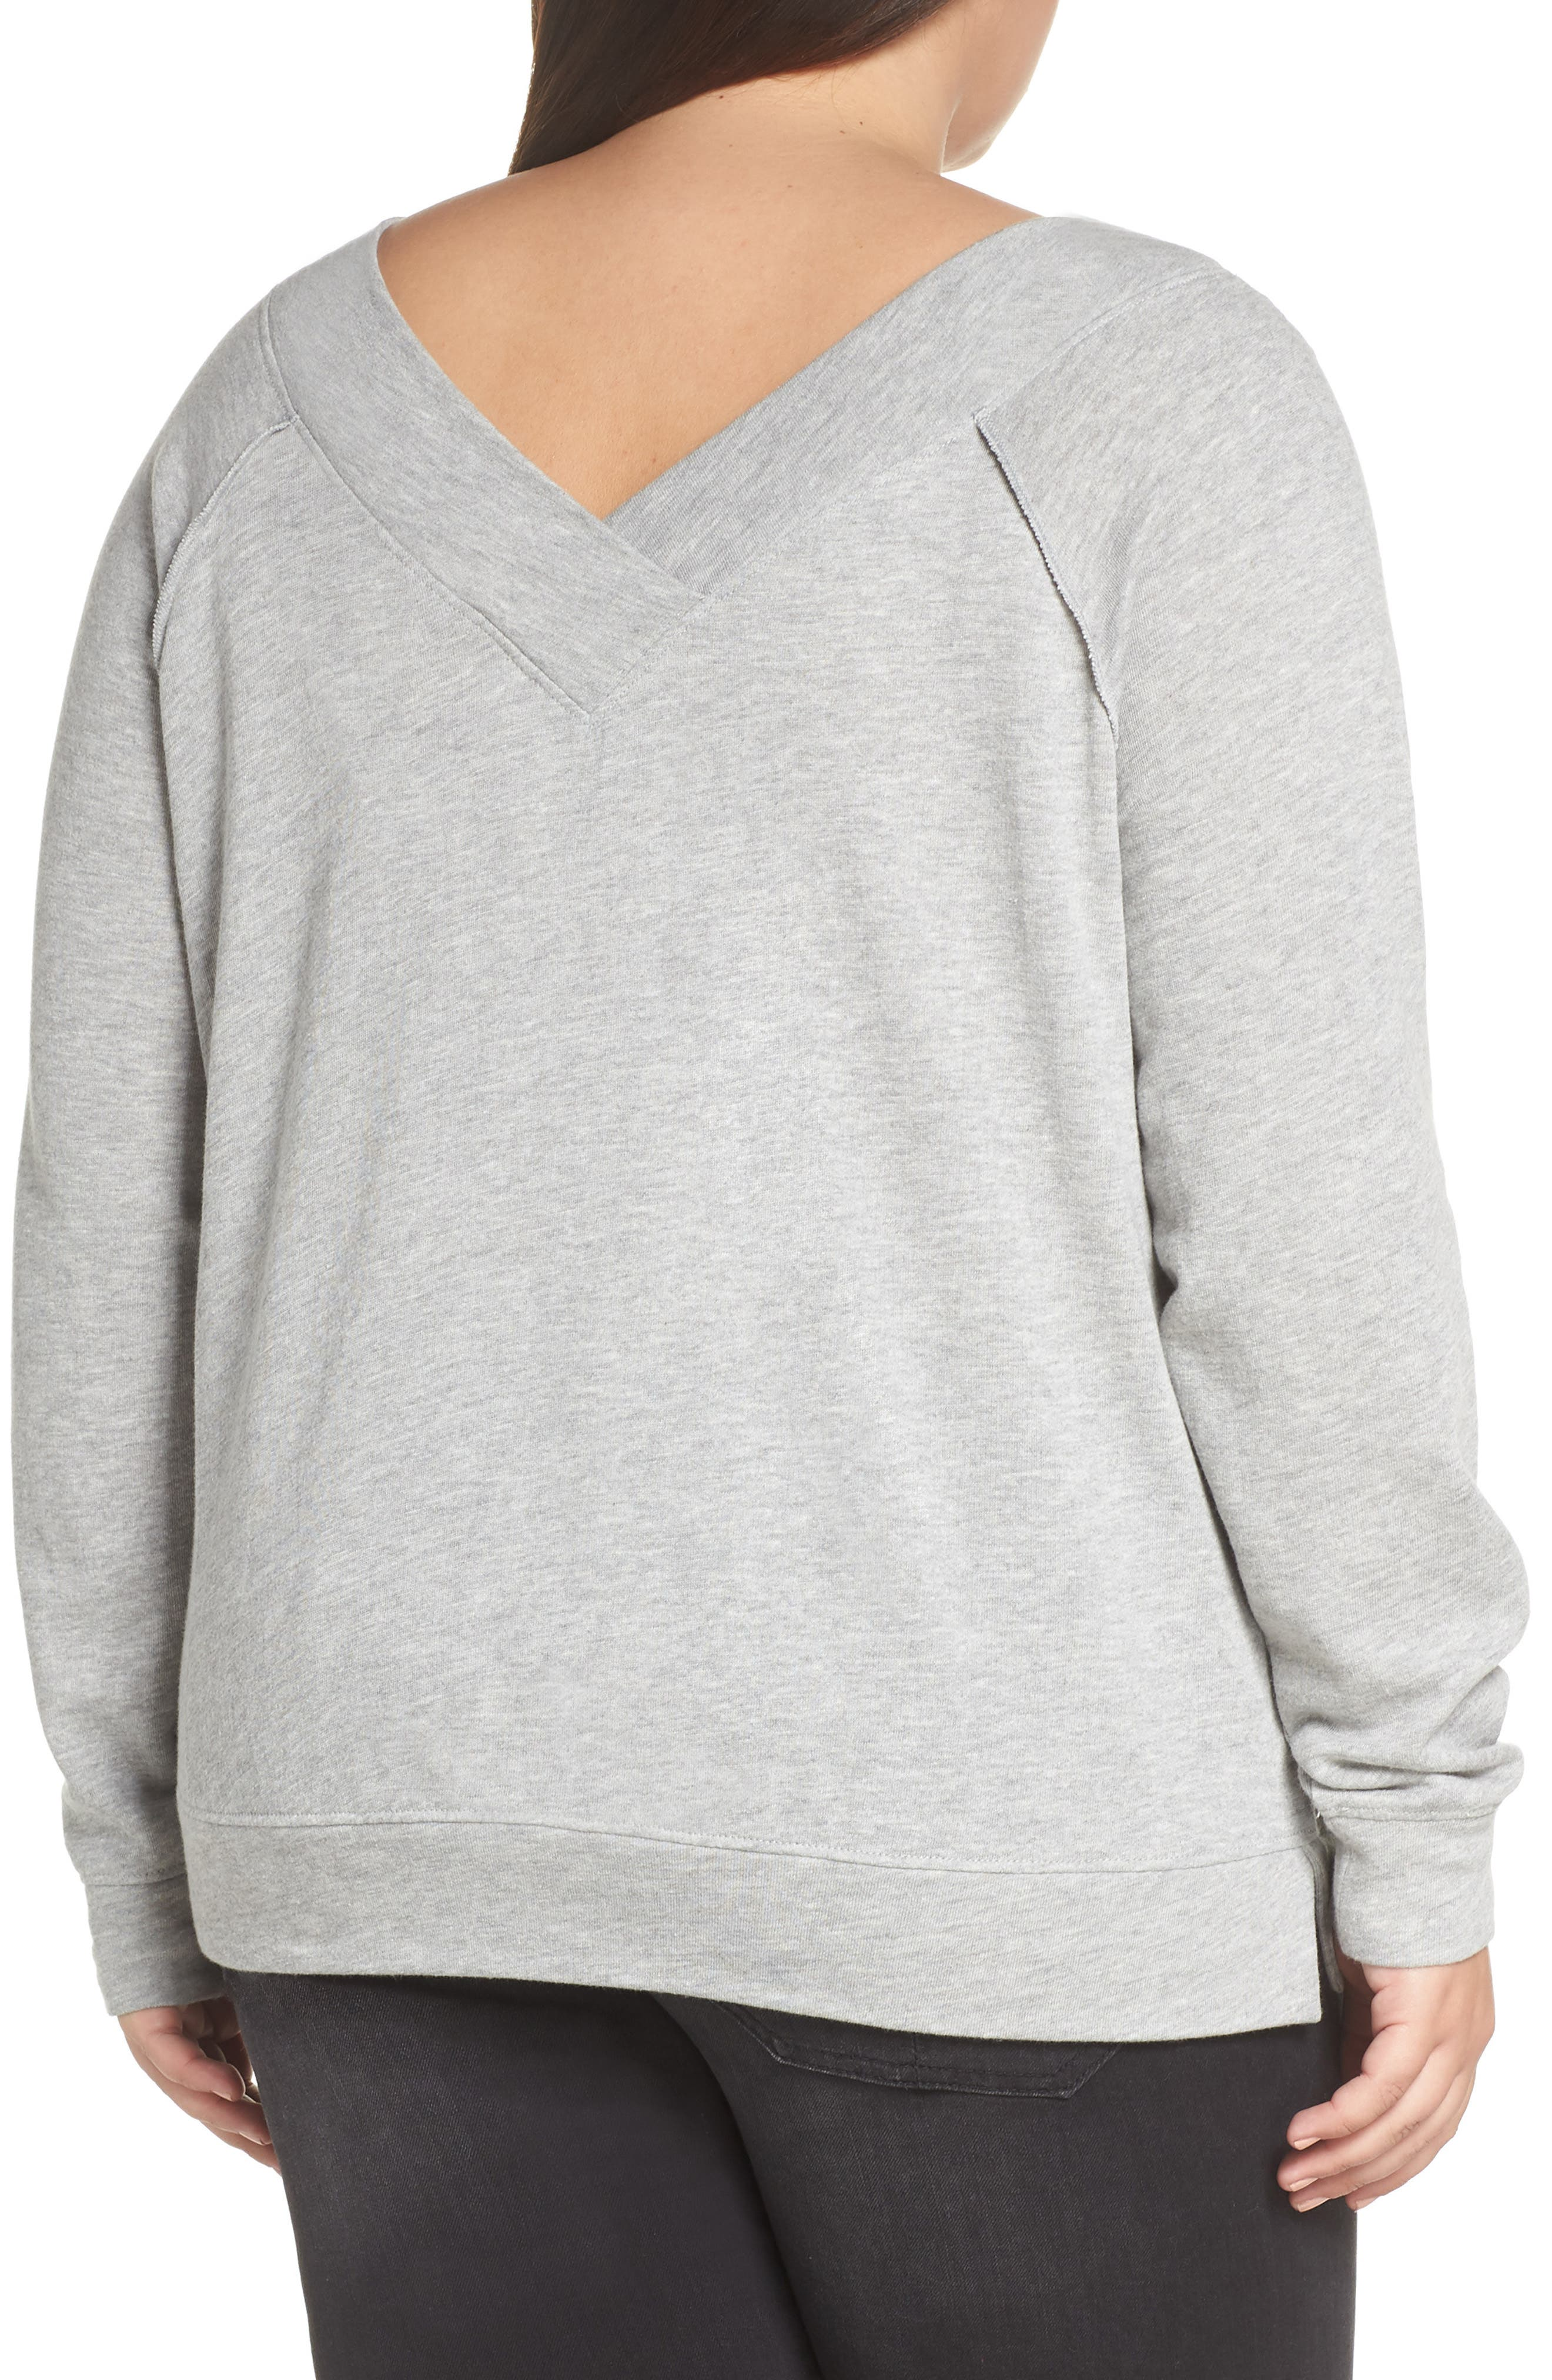 BP., Double V-neck Sweatshirt, Alternate thumbnail 8, color, GREY PEARL HEATHER